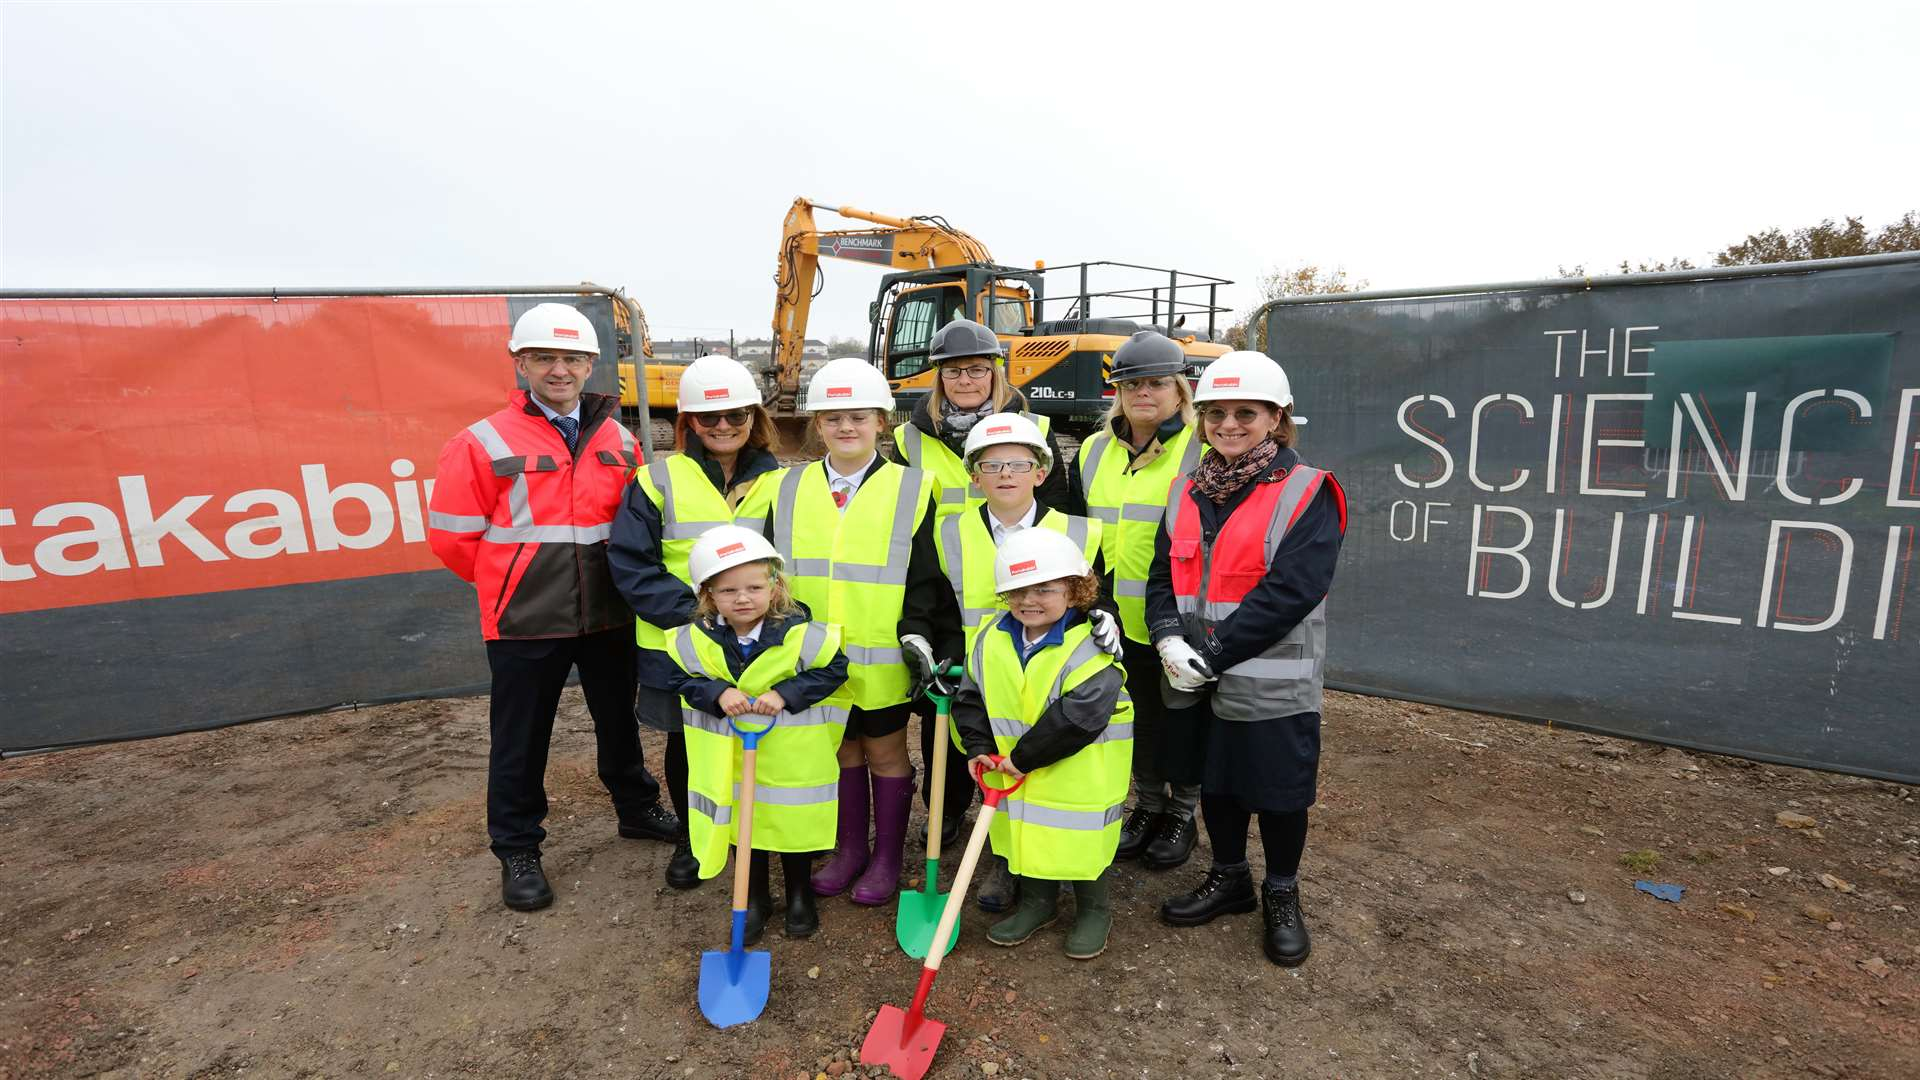 Priory Fields Primary School in Dover will have a new building.